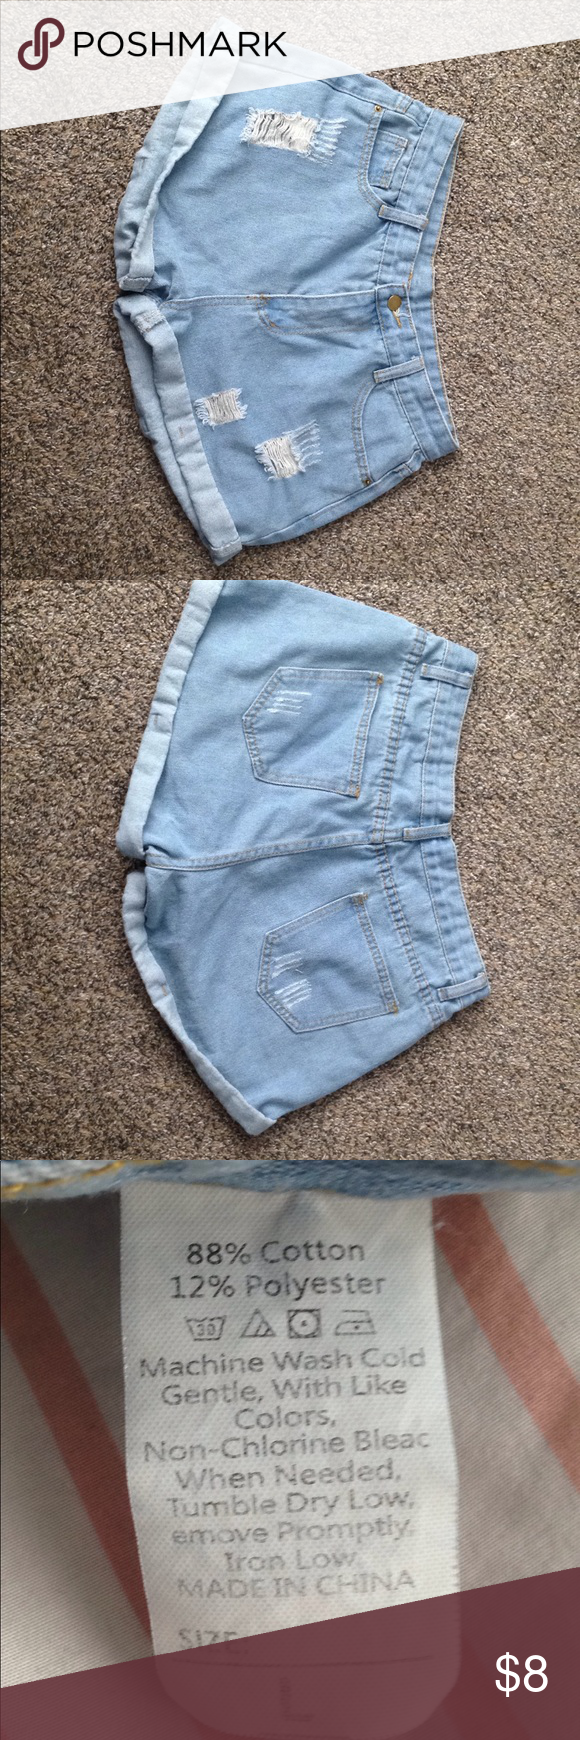 Light Blue Jean Shorts Jean Shorts. Offers are Welcome! ROMWE Shorts Jean Shorts #lightblueshorts Light Blue Jean Shorts Jean Shorts. Offers are Welcome! ROMWE Shorts Jean Shorts #lightblueshorts